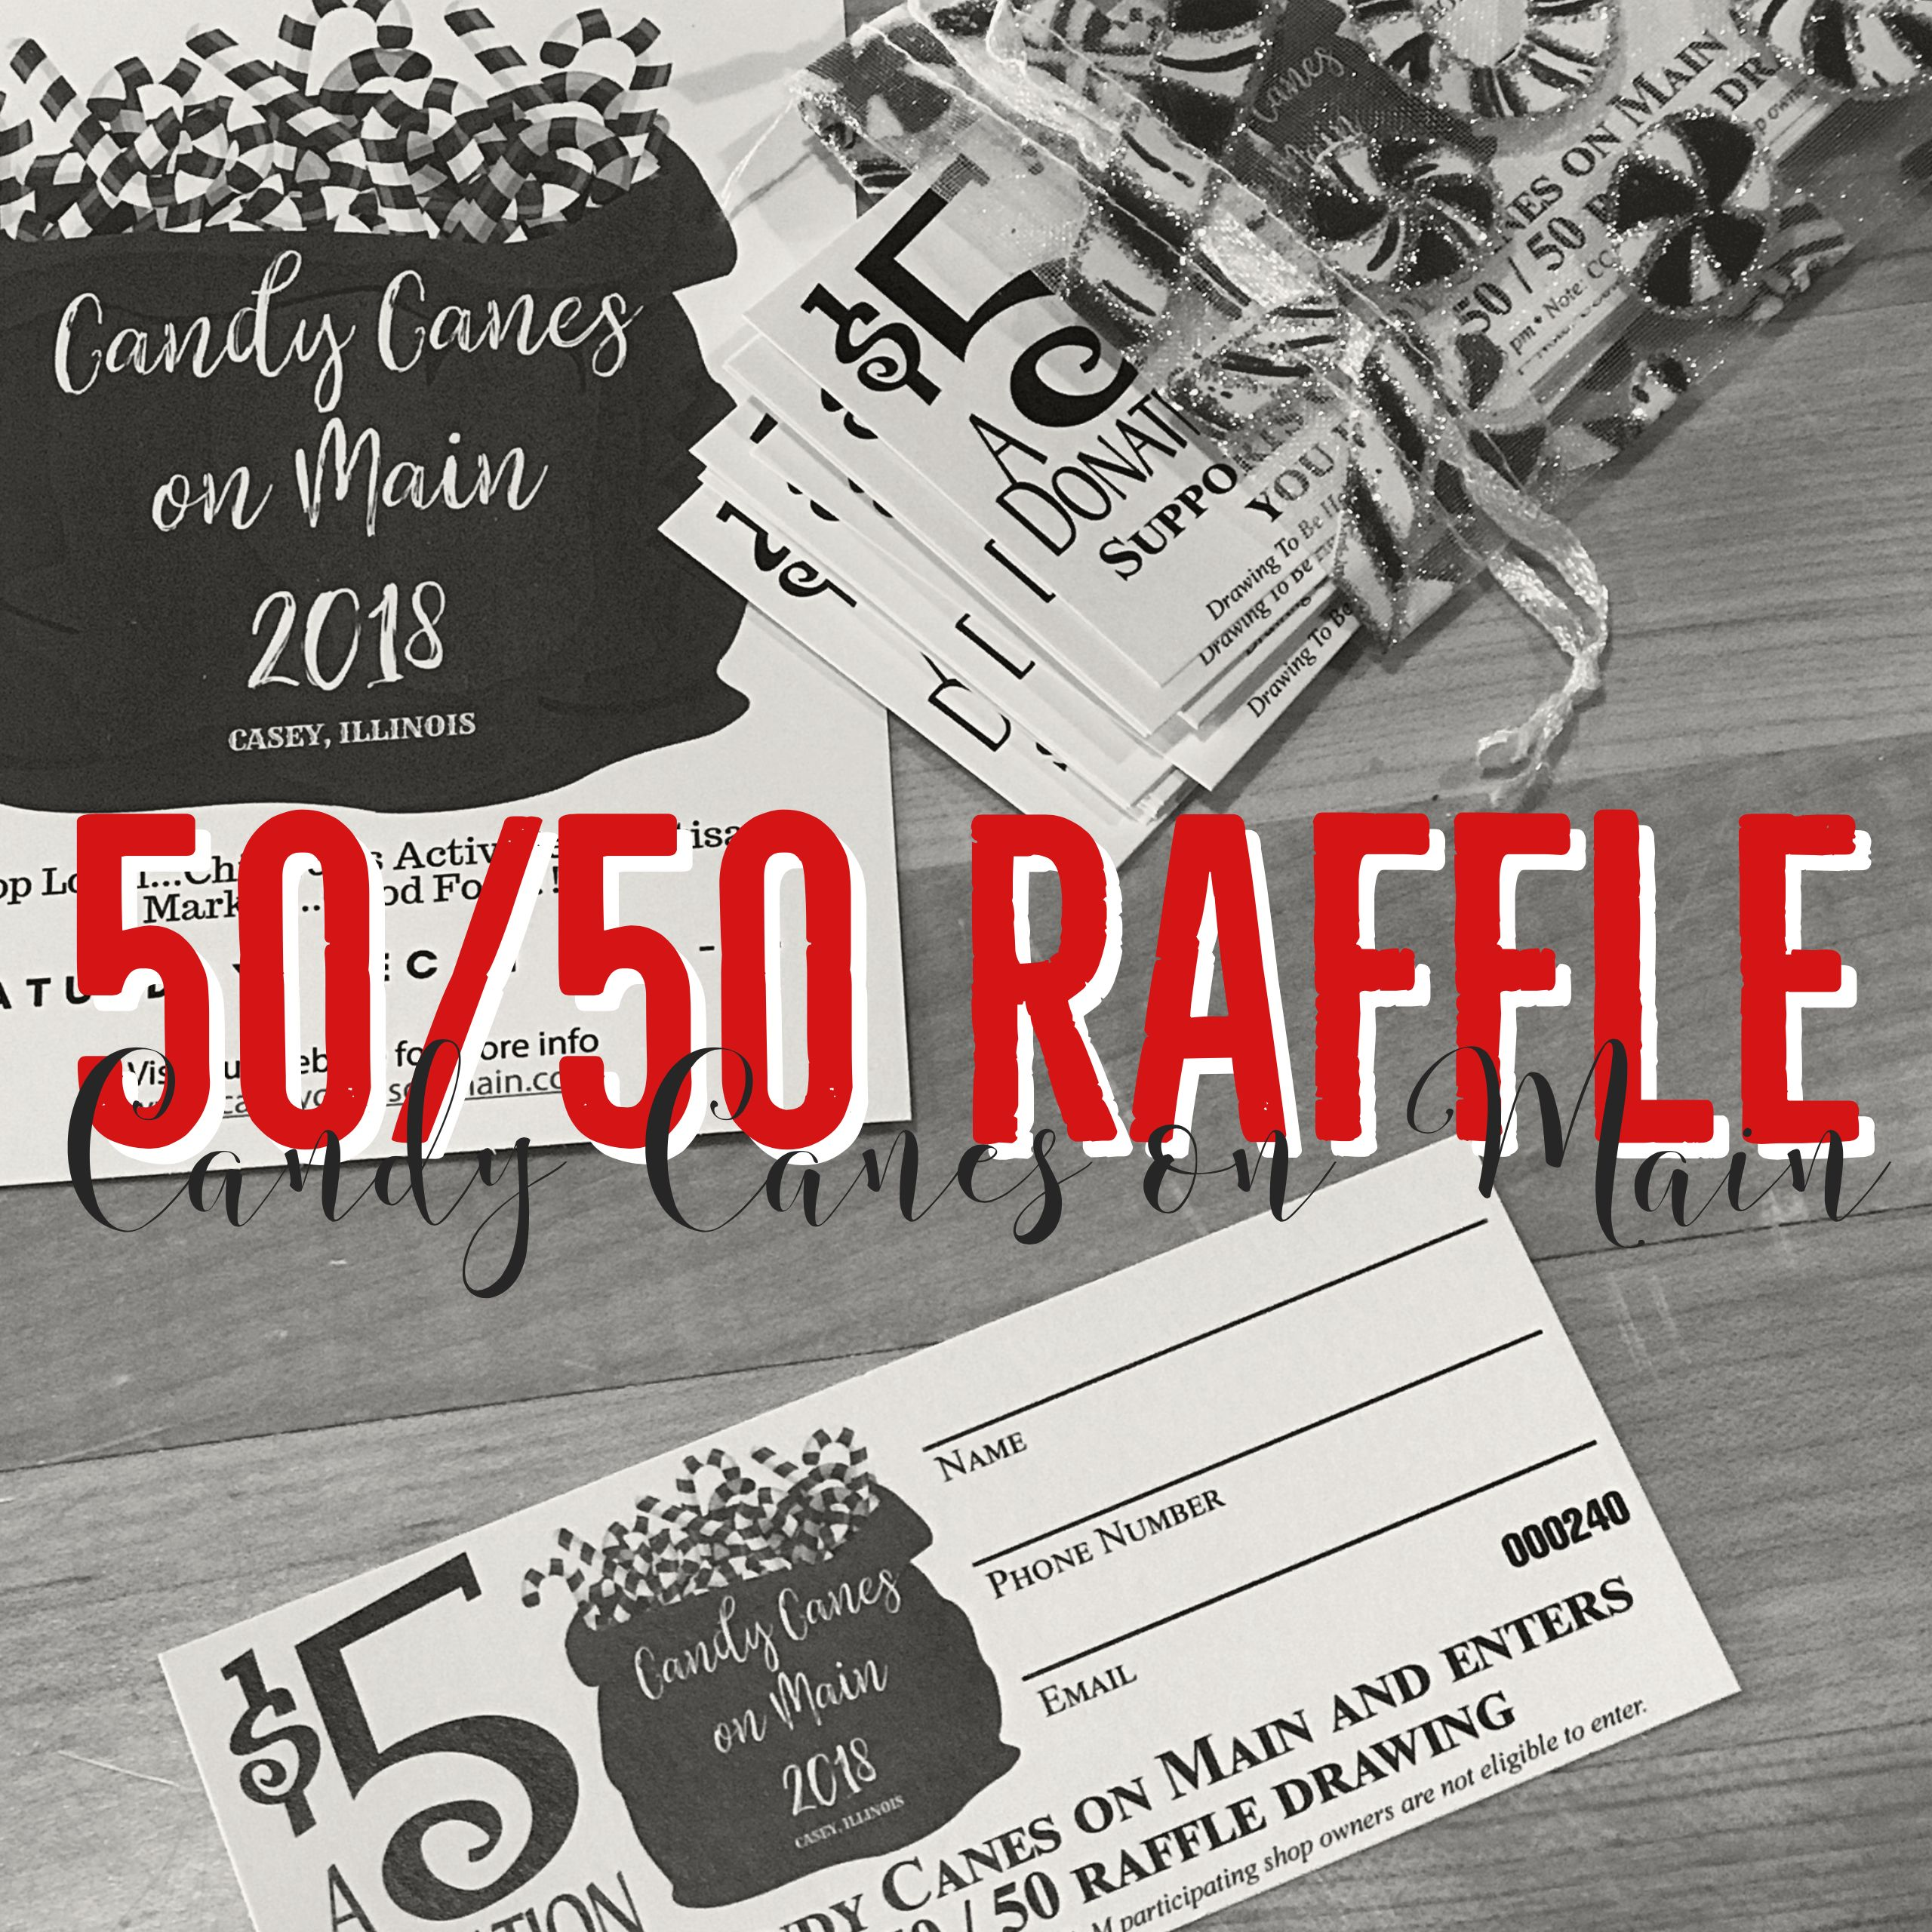 Wedding decorations vintage october 2018  GRAND PRIZE By giving a  donation to Candy Canes on Main